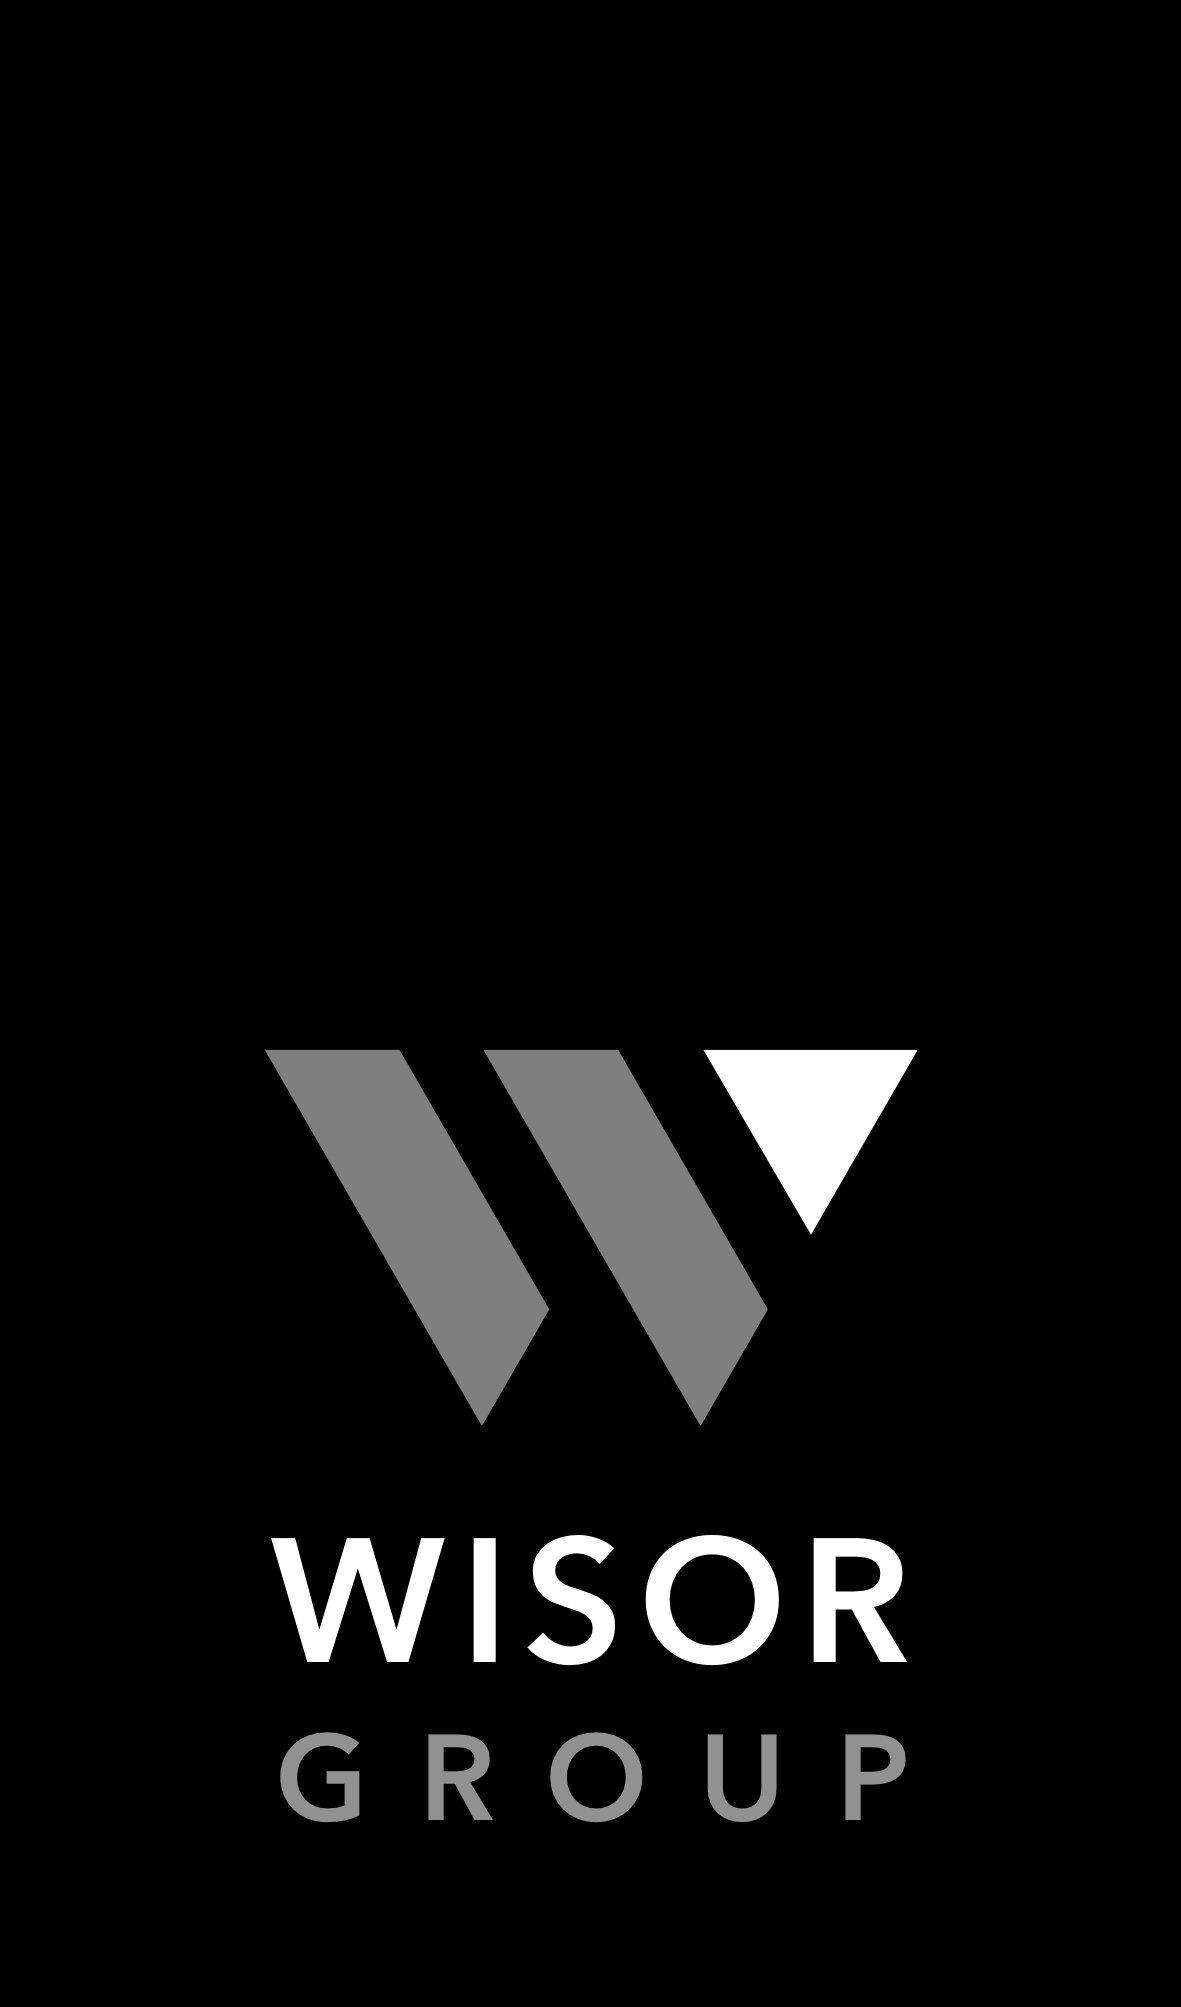 Wisor Group Document Logo.png  For download click on image.